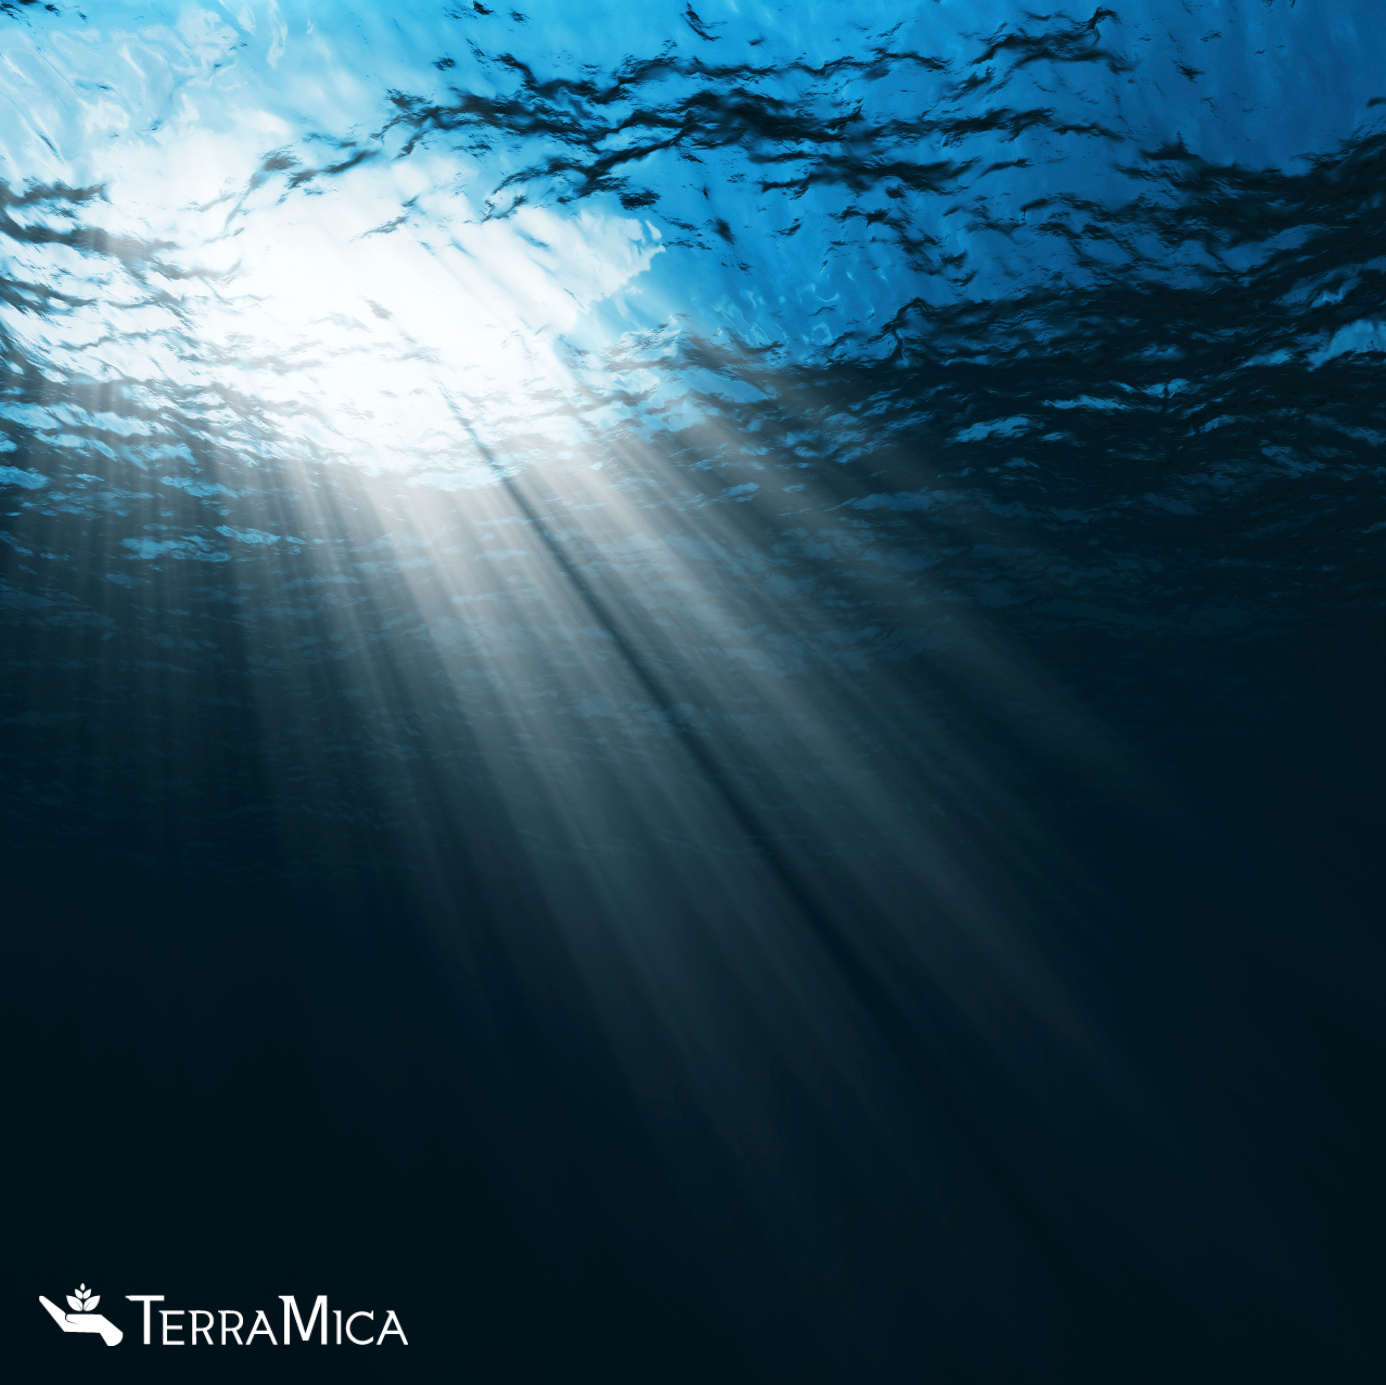 under-water-light-shining1.jpg